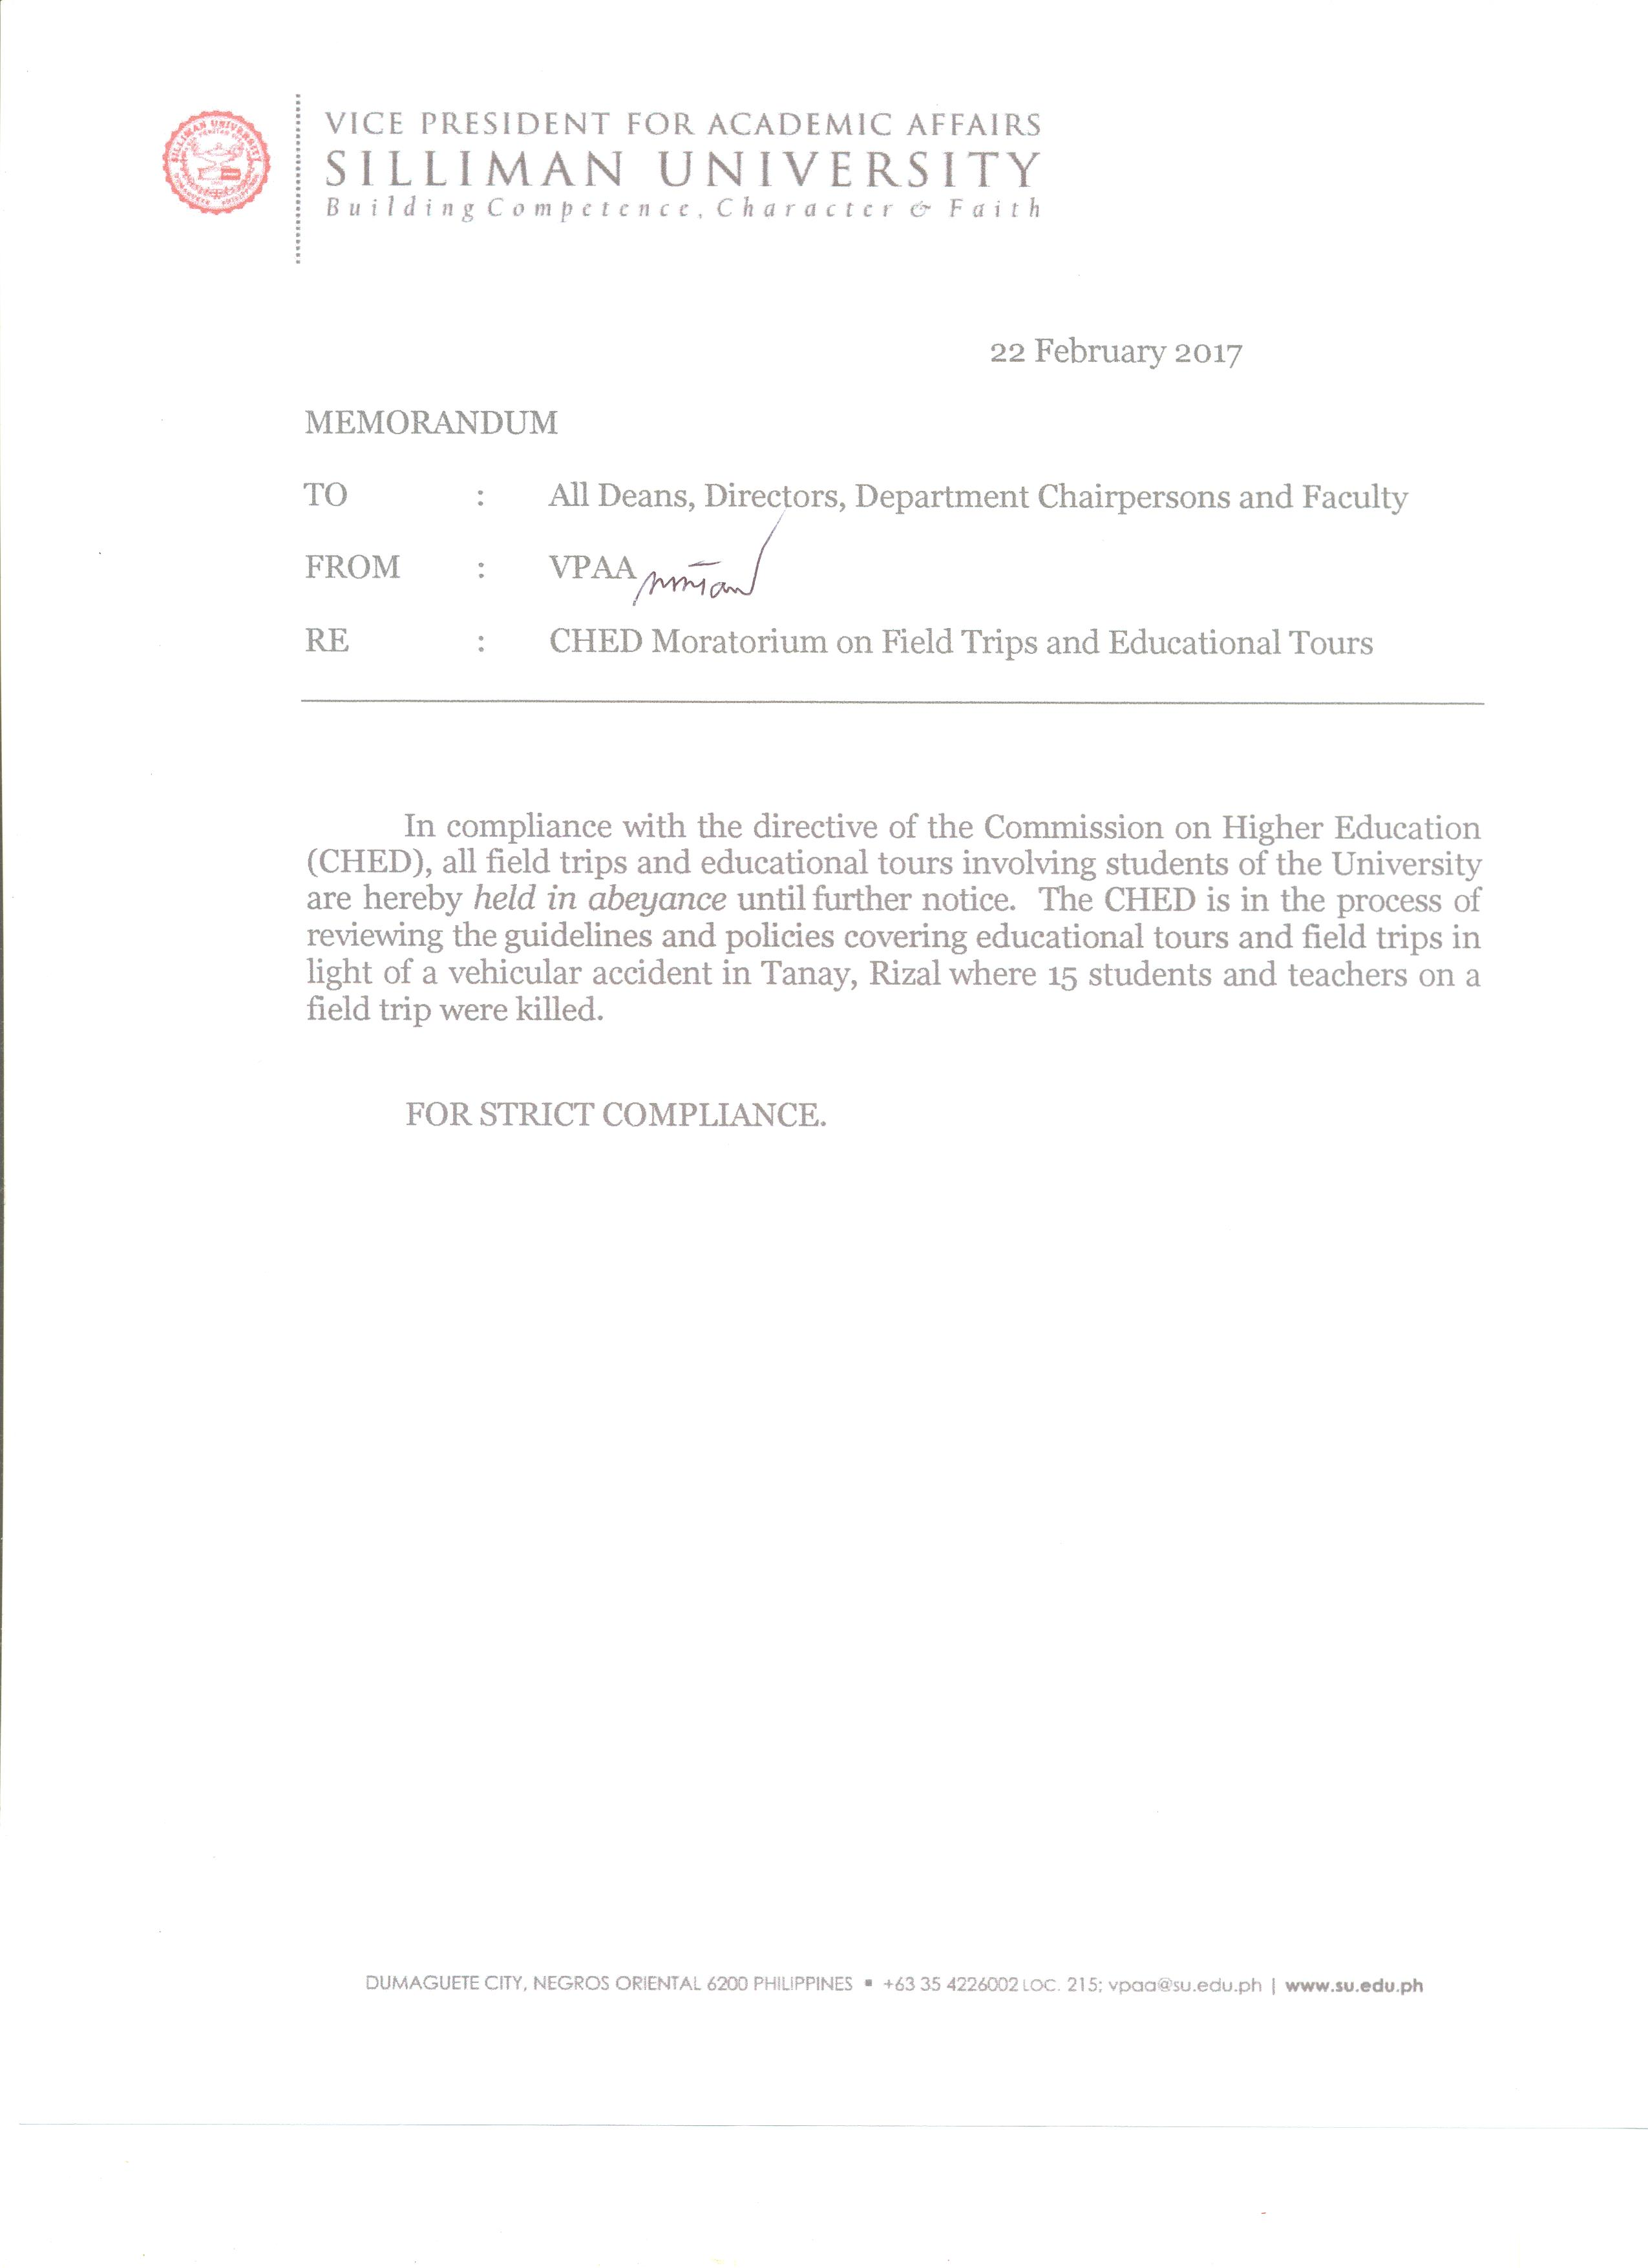 Memorandum on the CHED Moratorium on Field Trips and